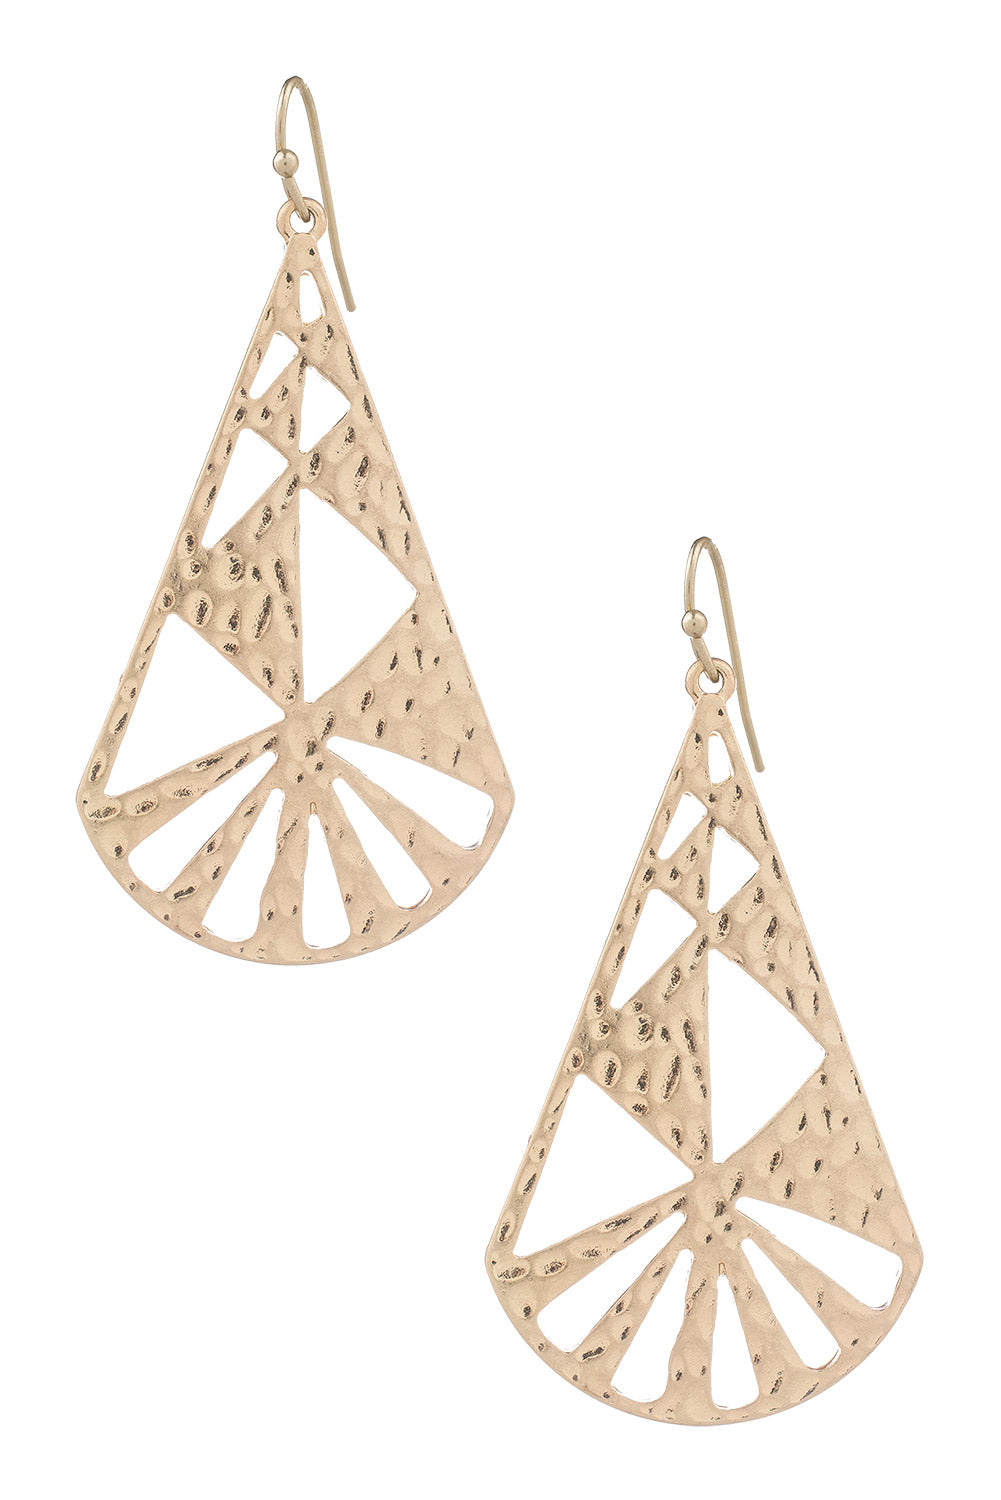 Type 3 Just Try Angles Earrings